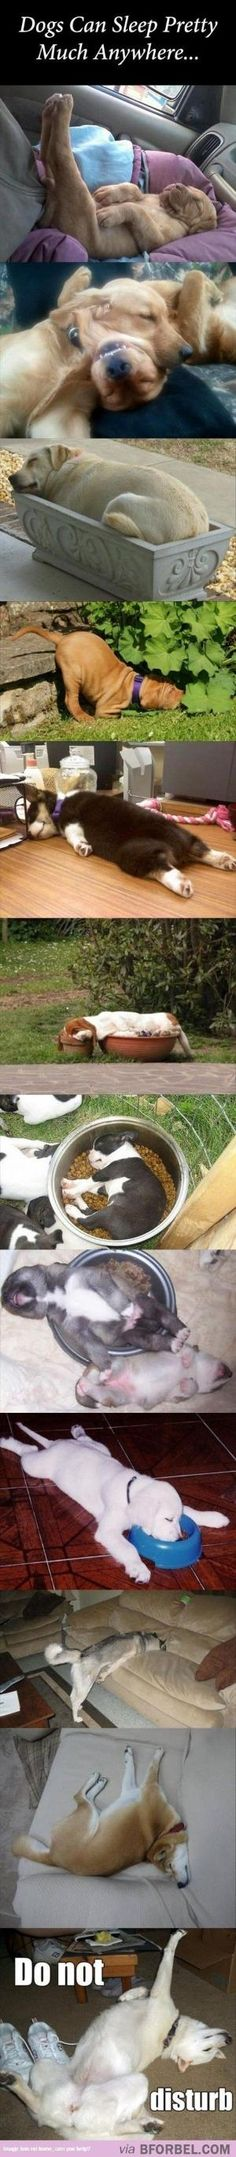 12 Dogs That Can Sleep Anywhere, In Any Position.. by natasha